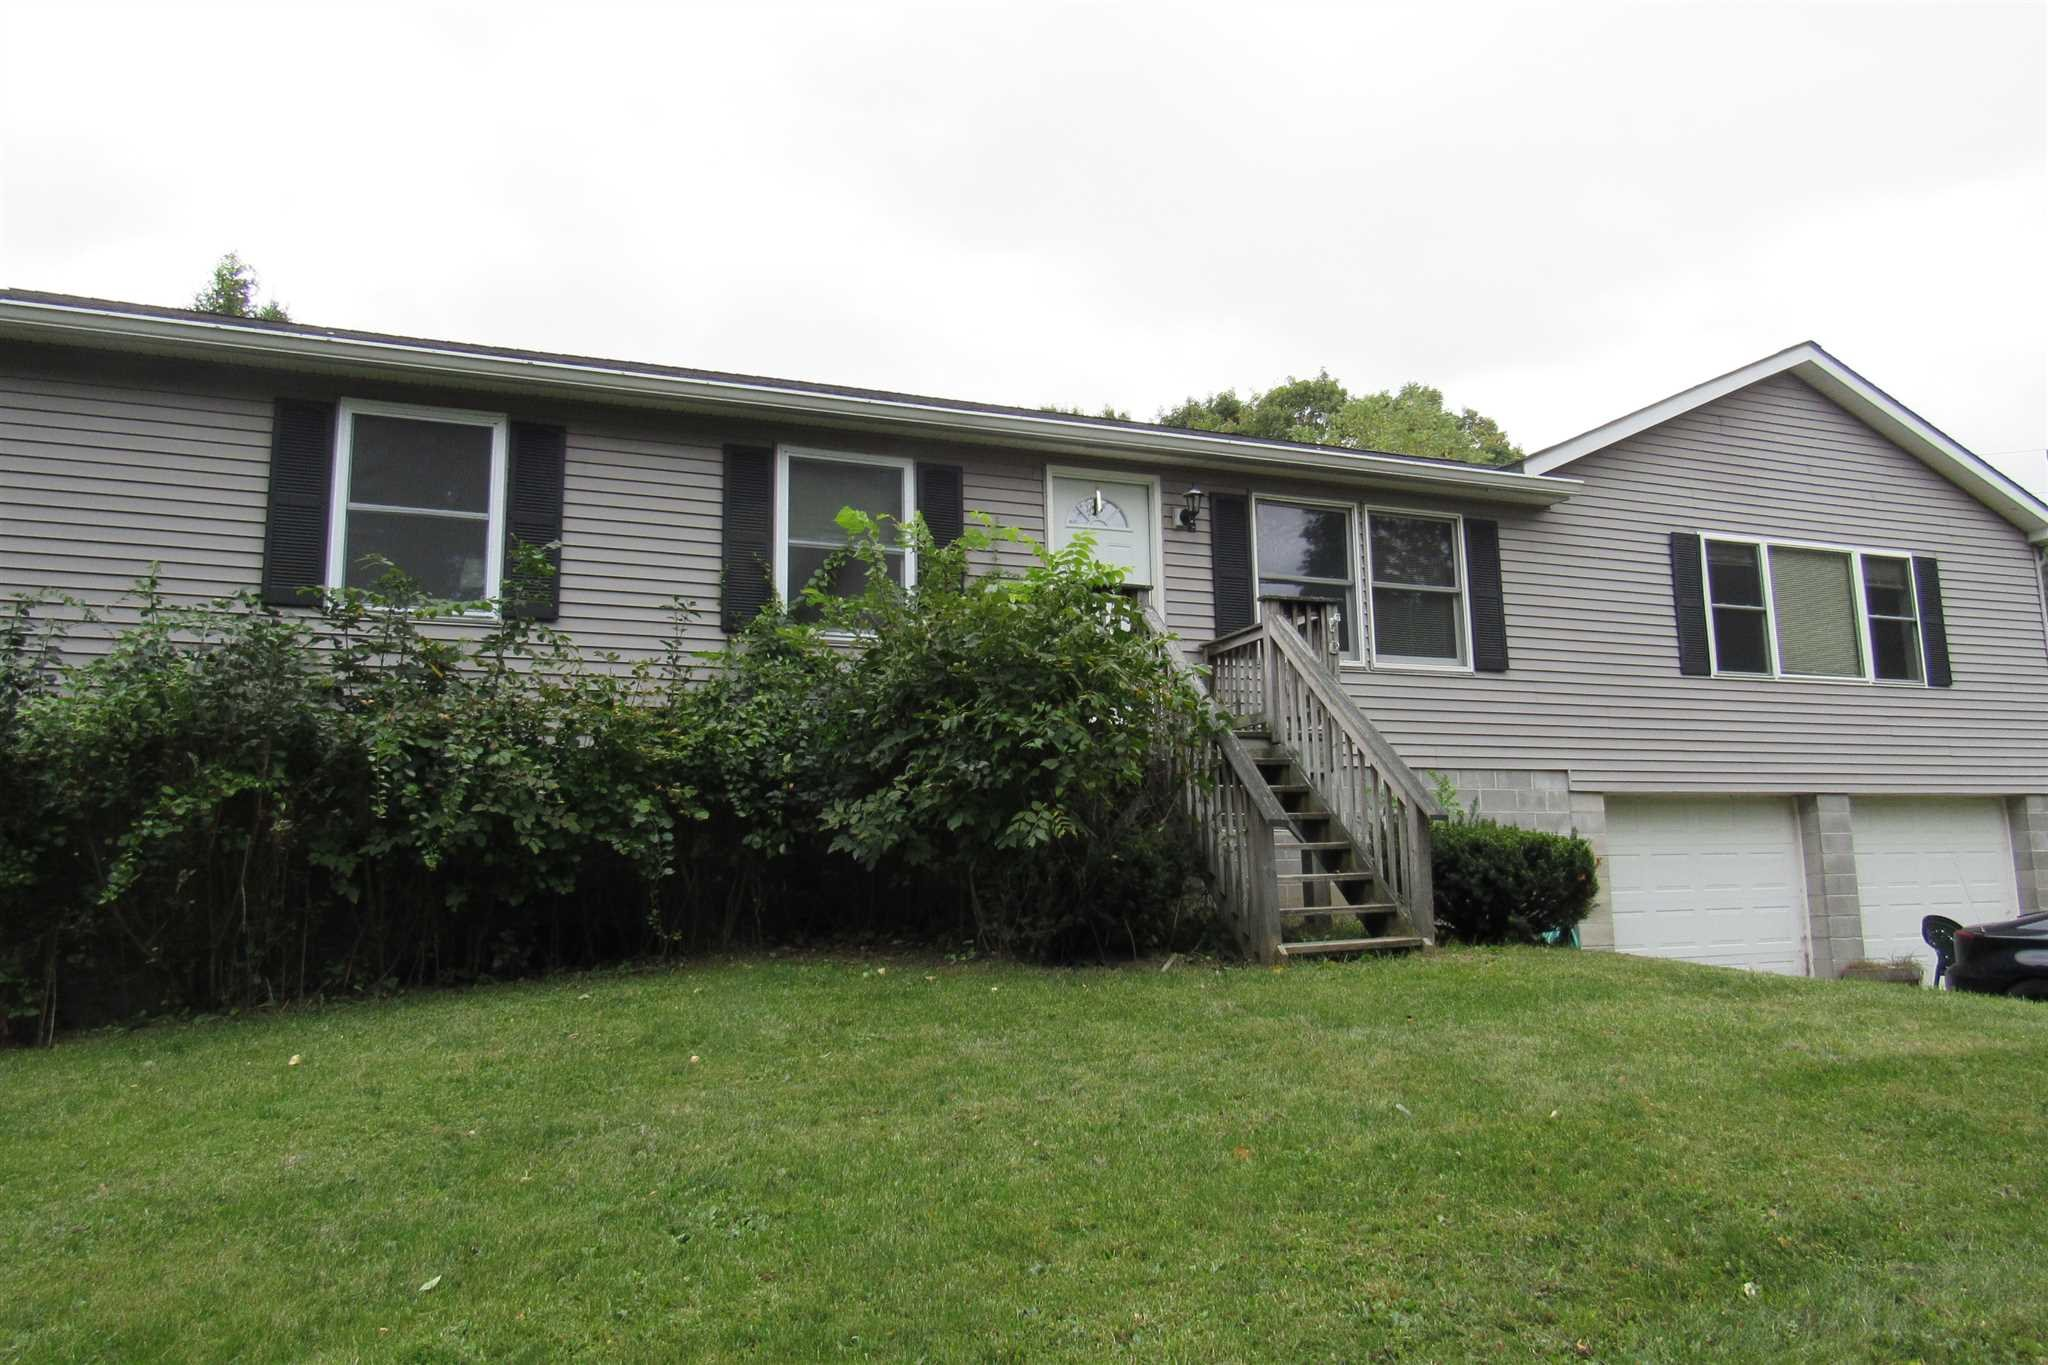 Single Family Home for Sale at 61 POPLAR HILL Road 61 POPLAR HILL Road Amenia, New York 12592 United States